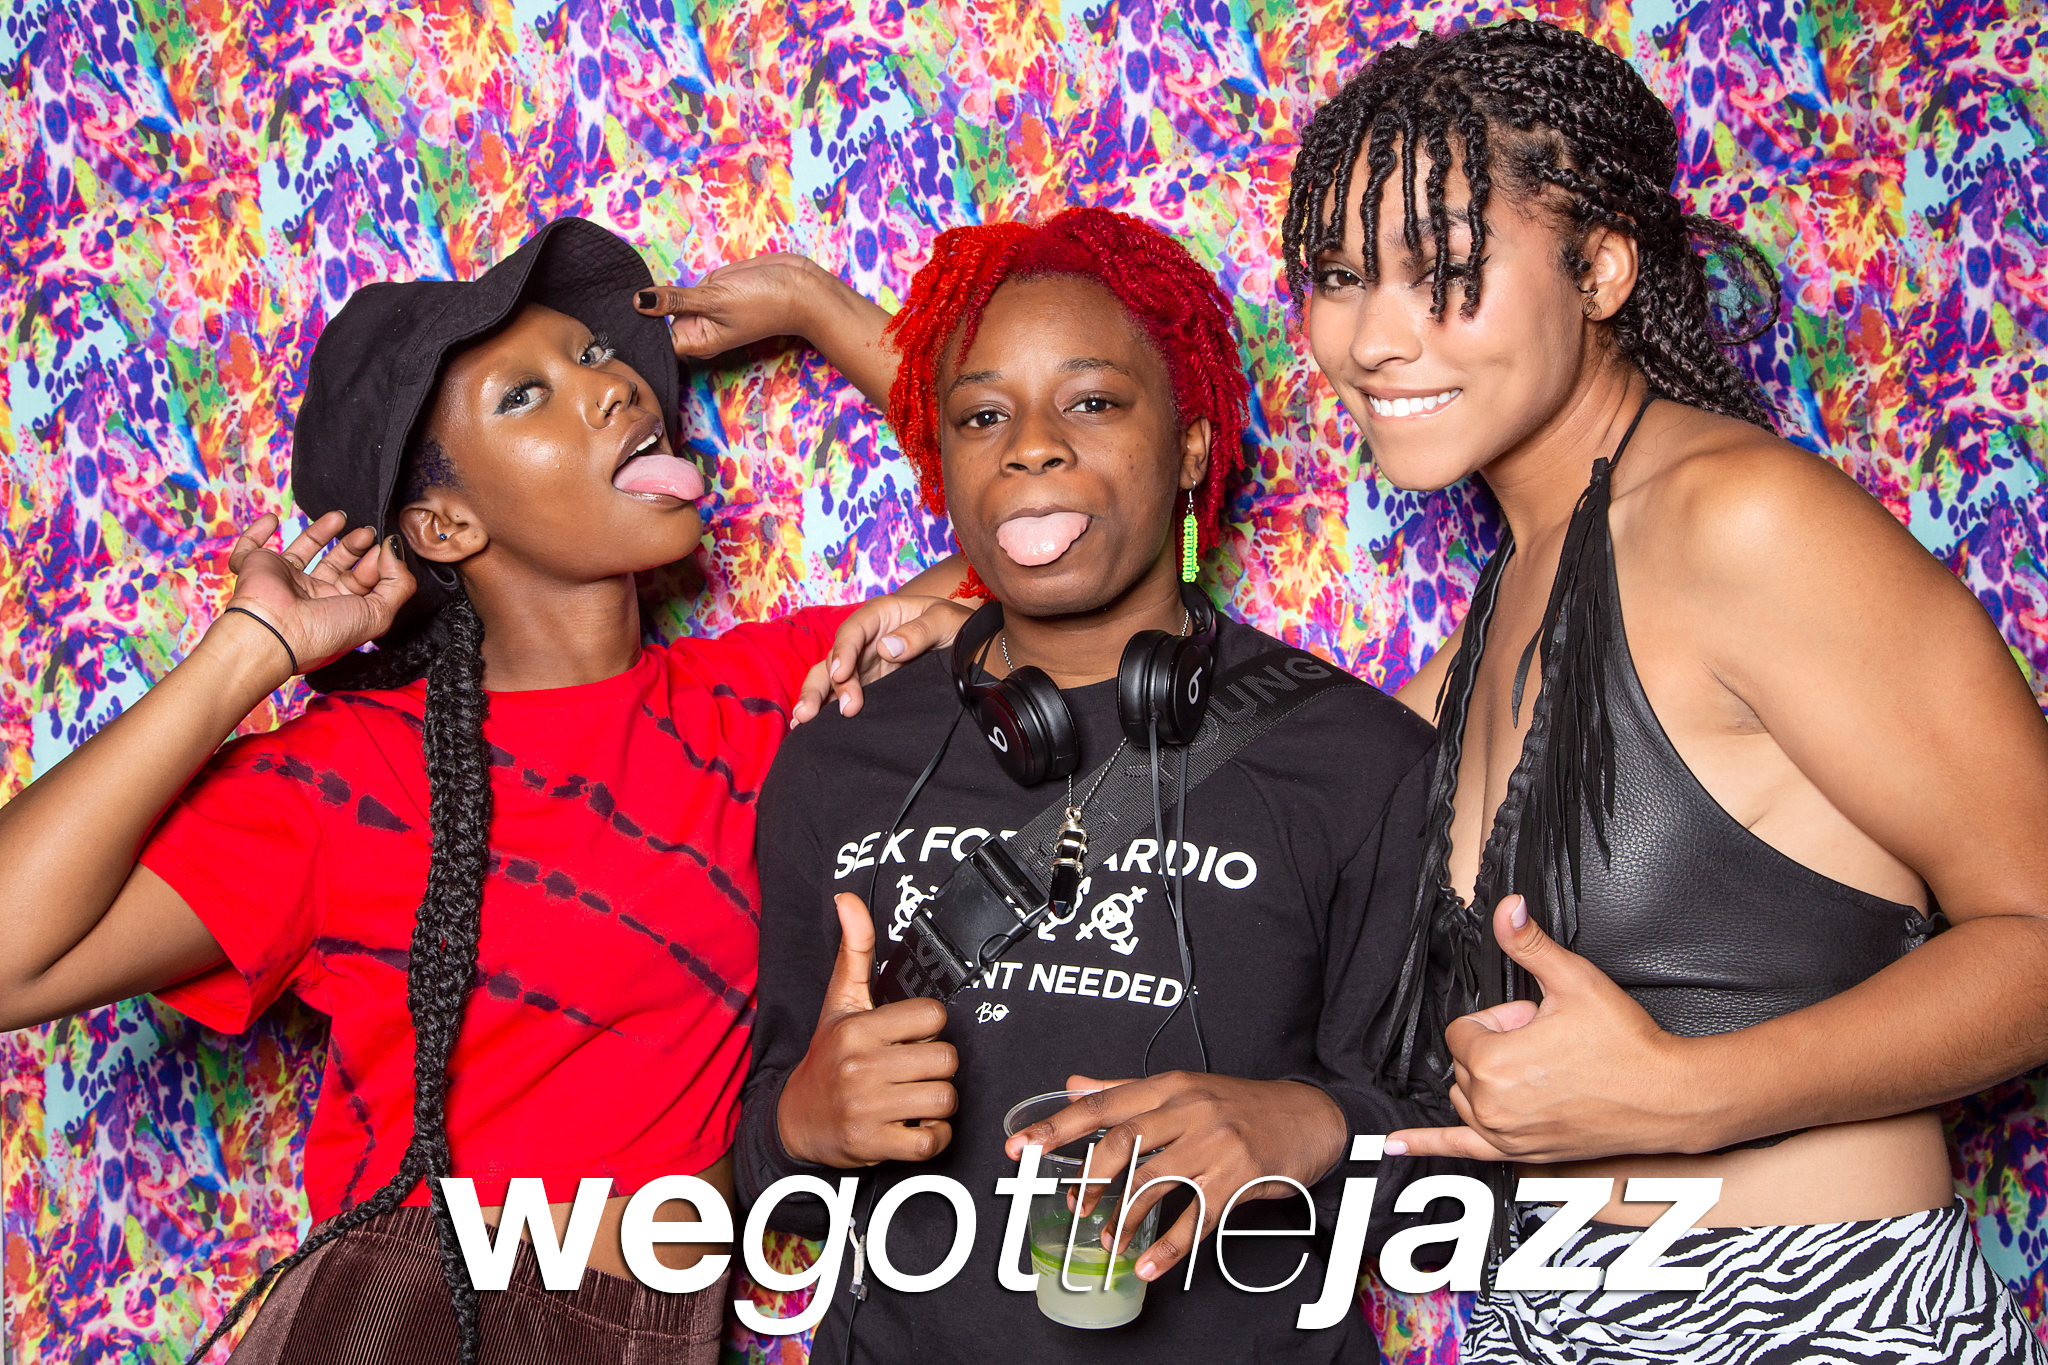 glitterguts portrait booth photos from we got the jazz at ace hotel, chicago 2021